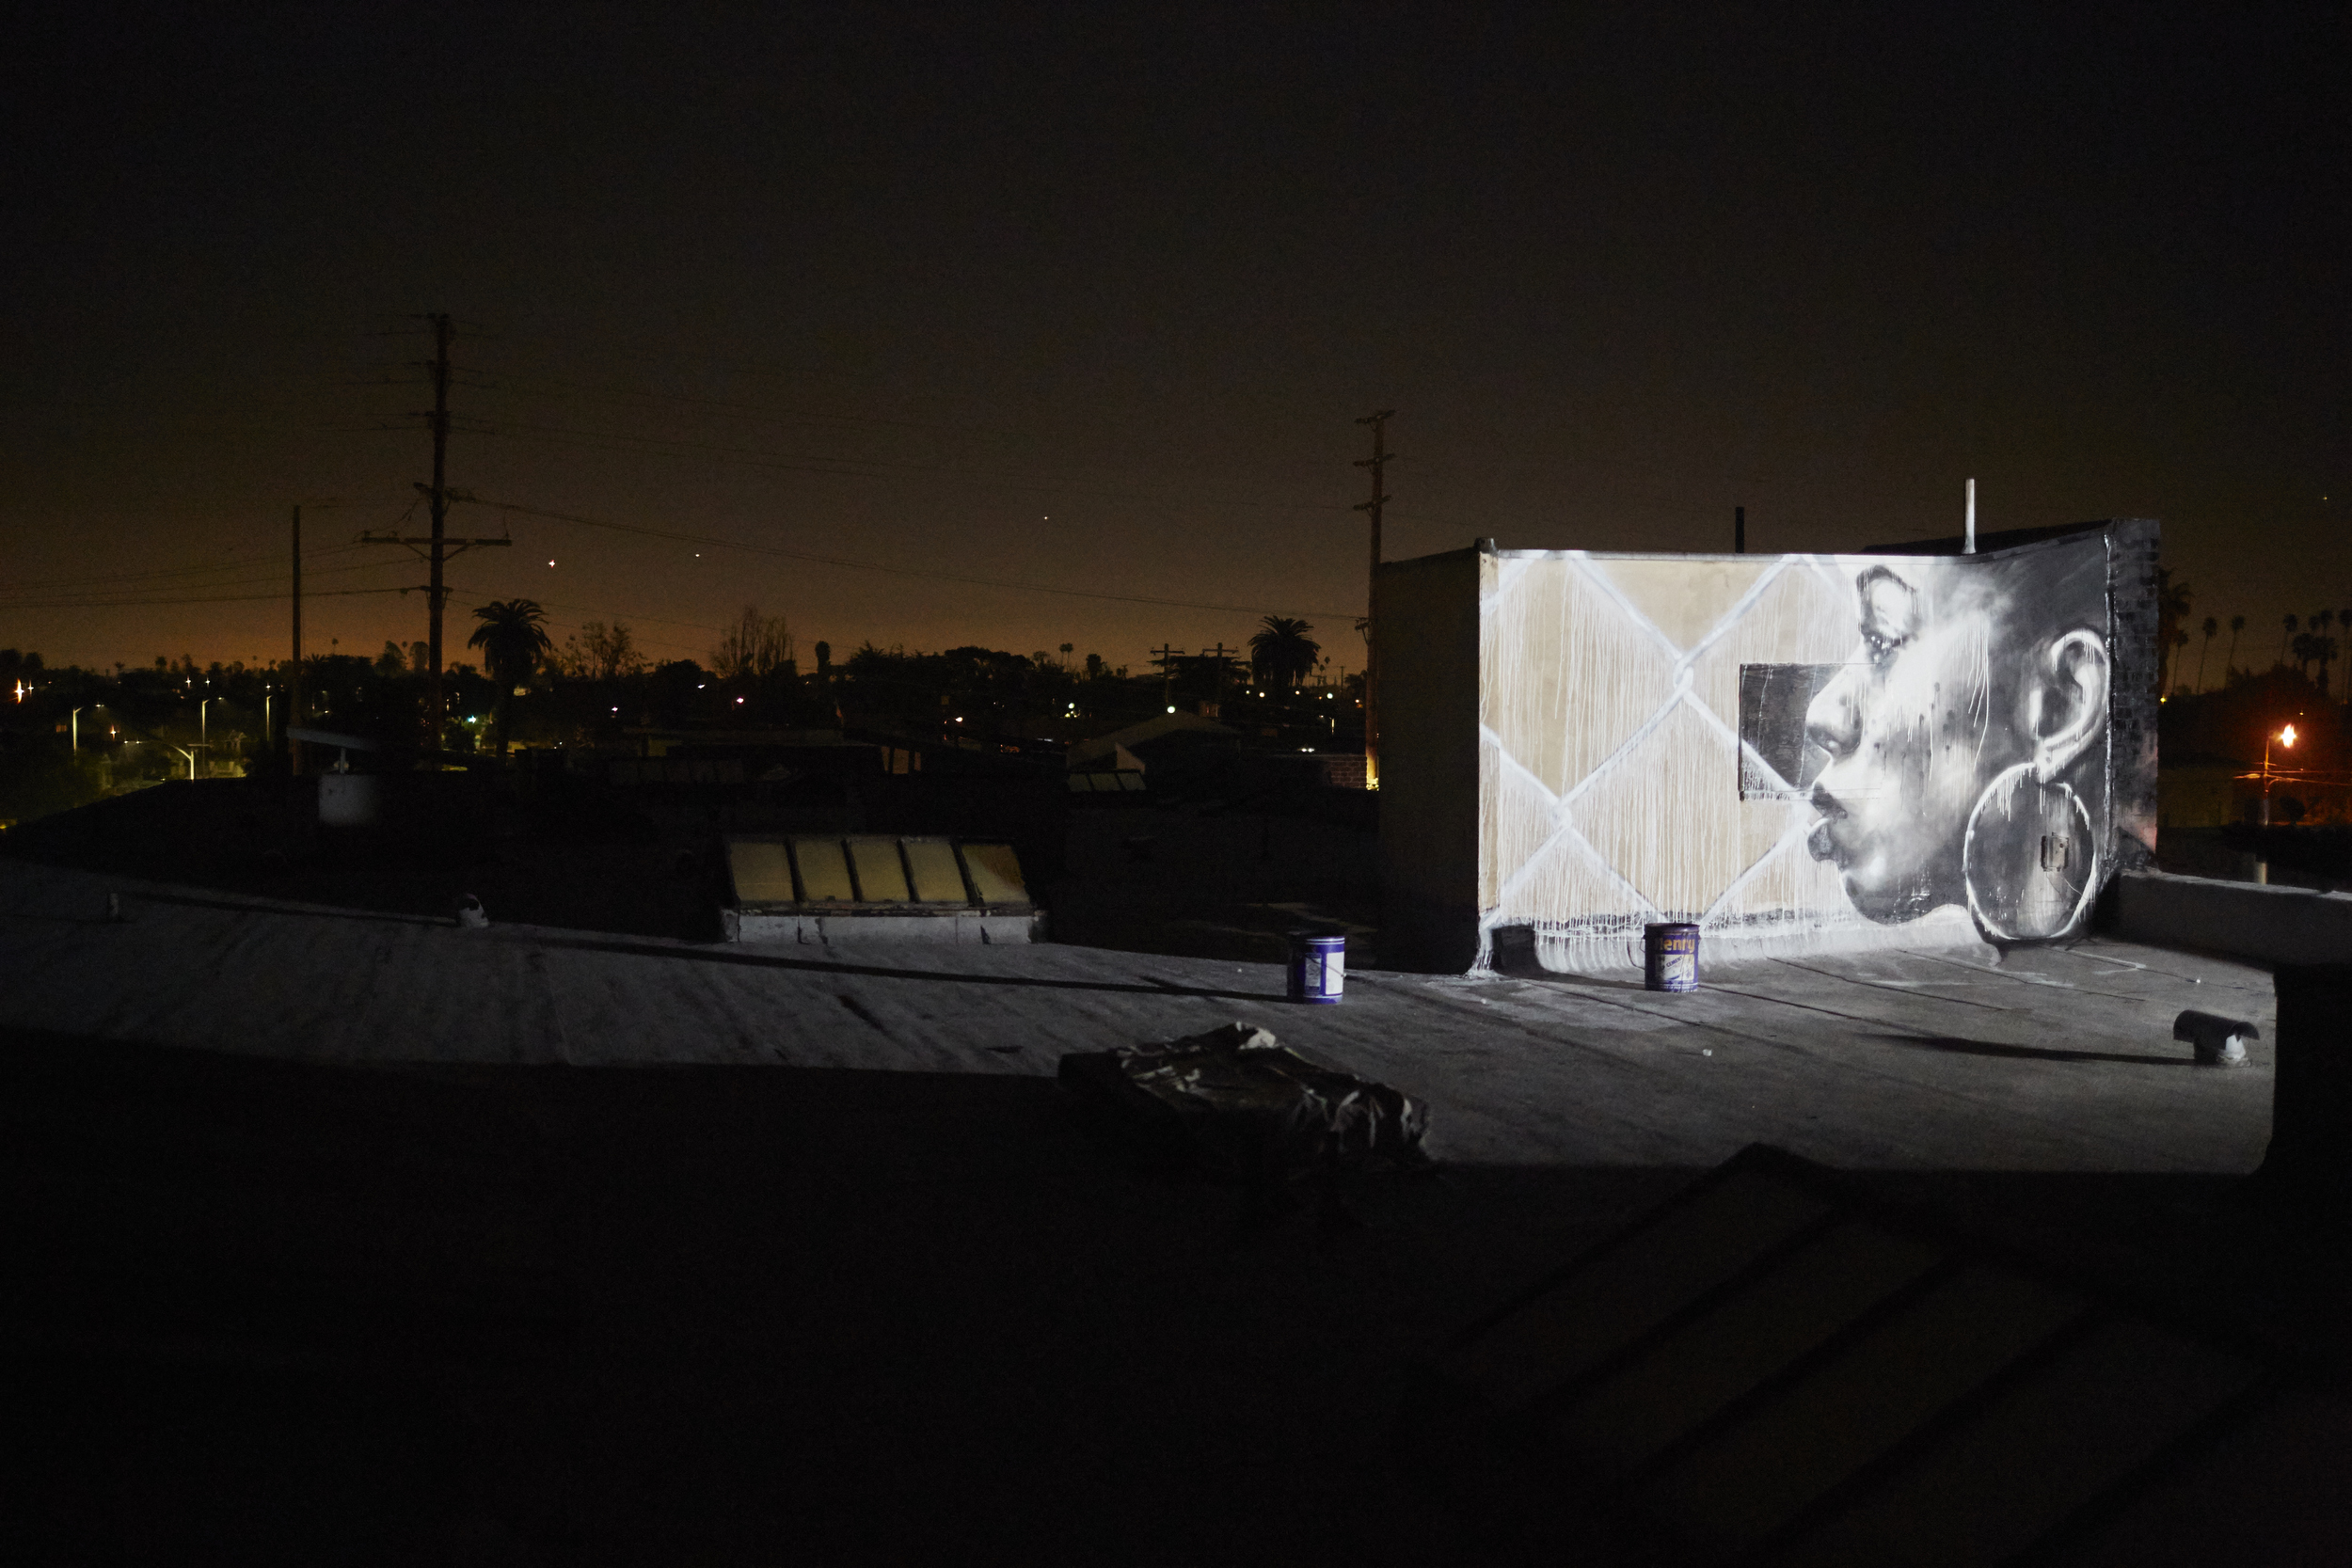 Angelina Christina - South Central: The Roof